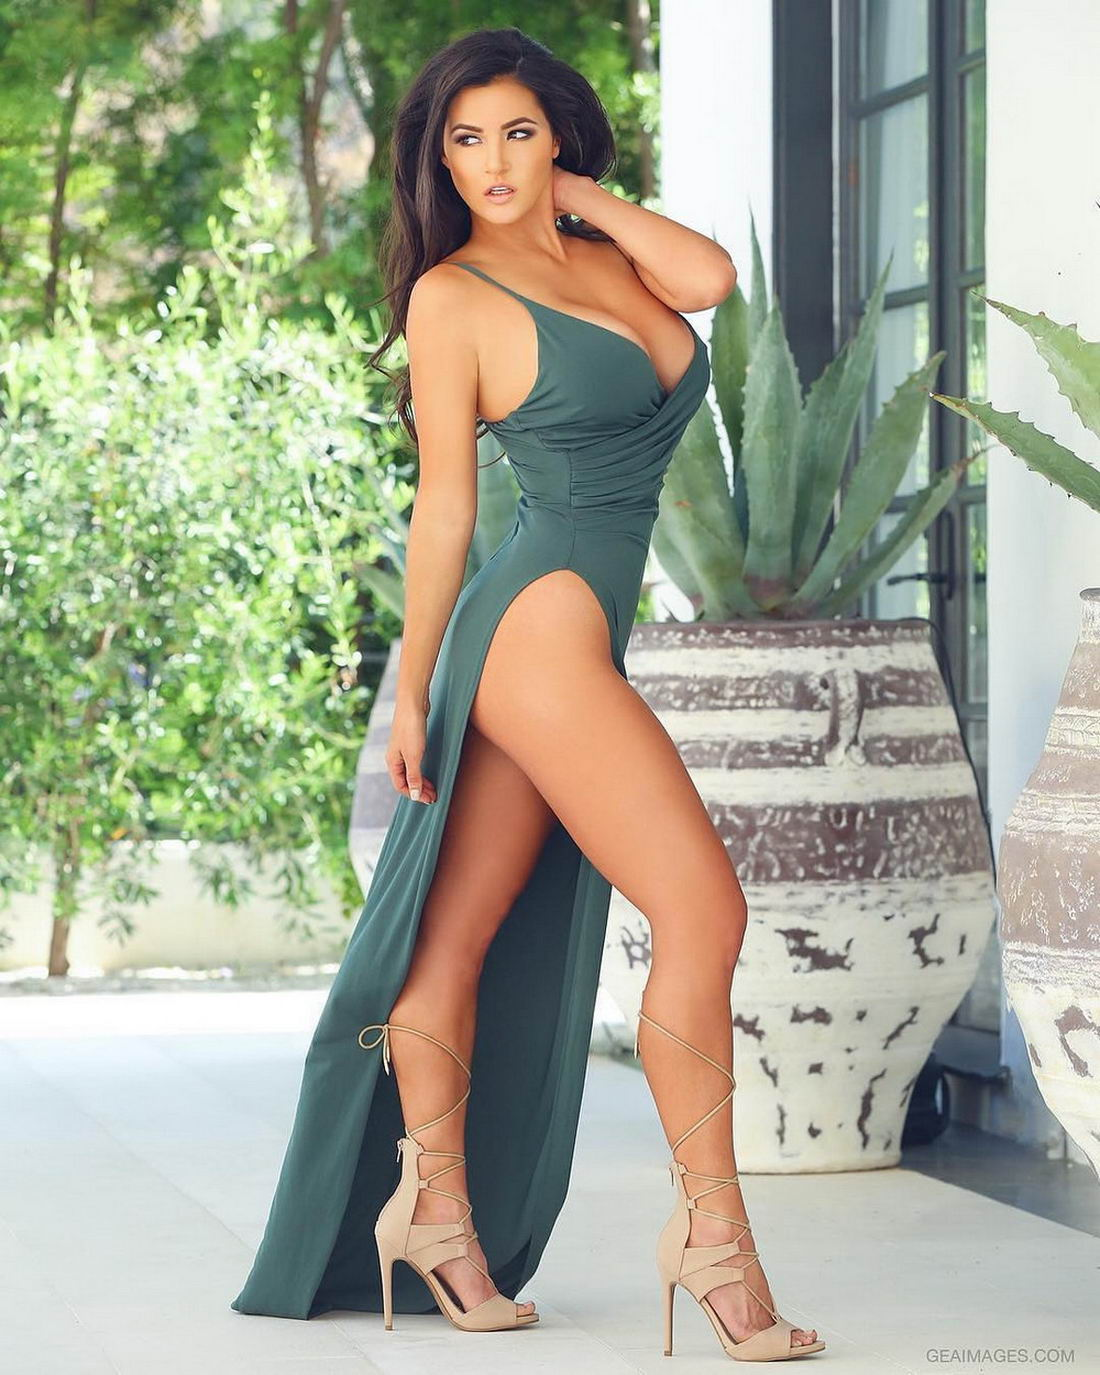 Hot Girls In Tight Dresses Are Sexy (32 Photos + 3 GIFs)